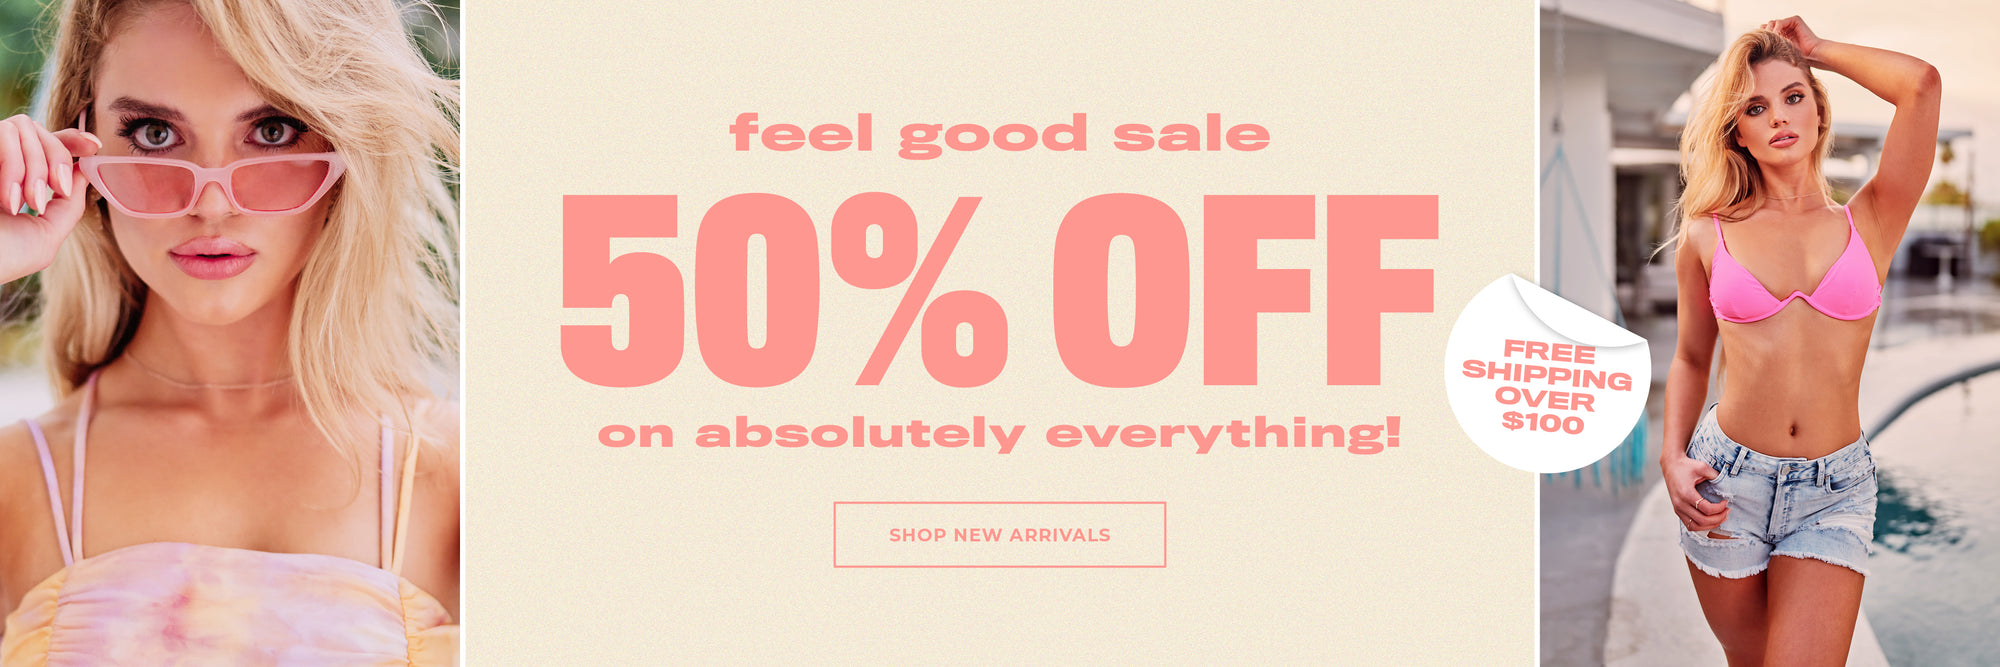 Sirens | Feel Good Sale - 50% Off everything!